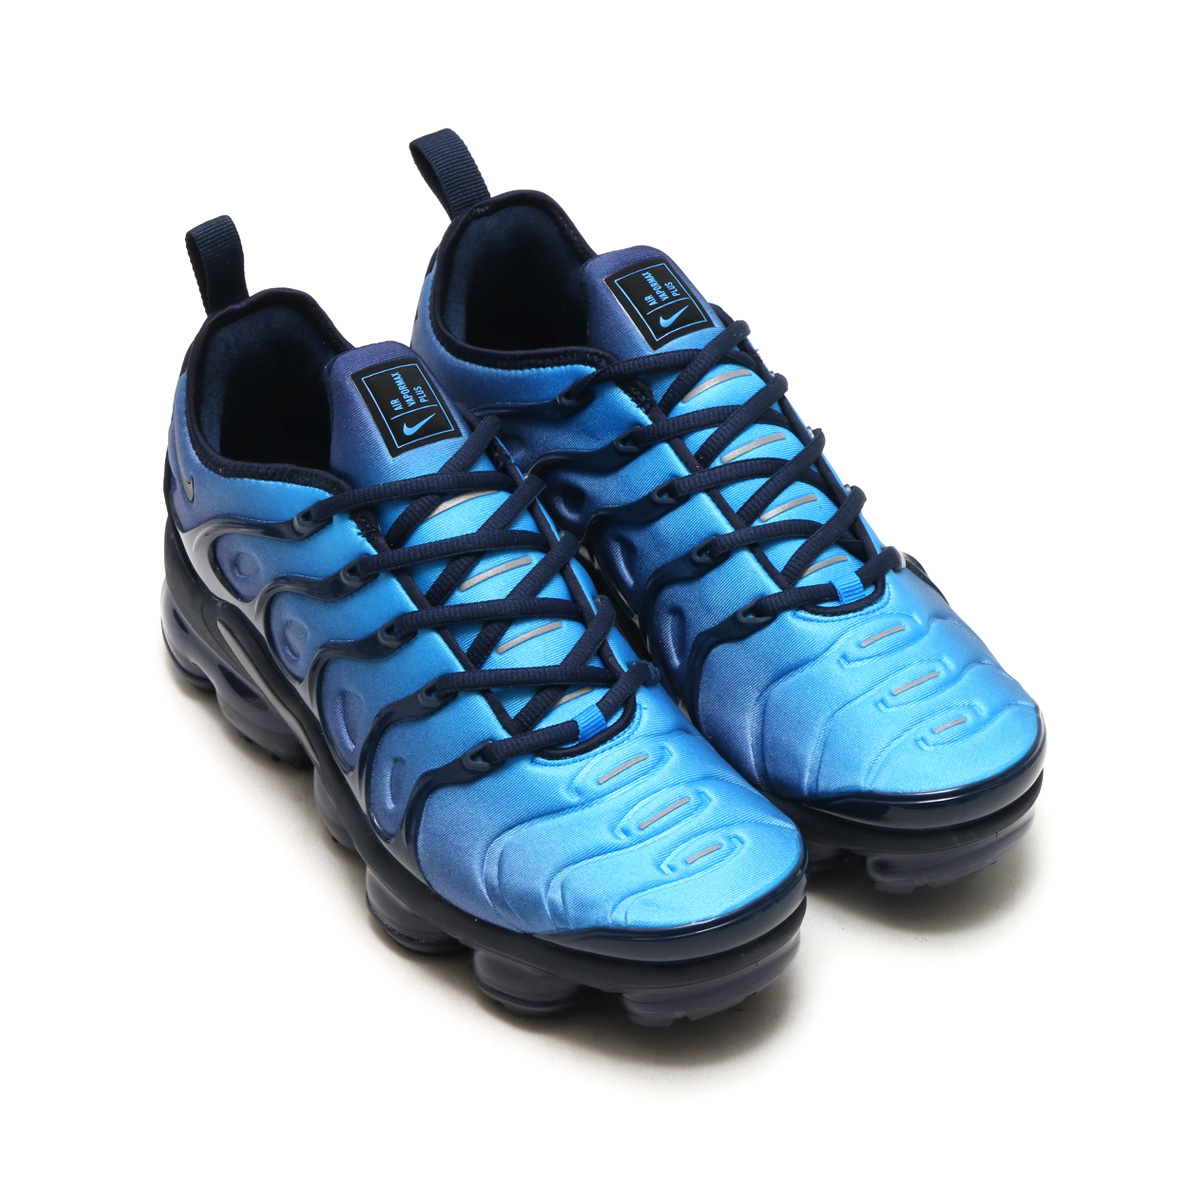 43030c094b9 NIKE AIR VAPORMAX PLUS (Nike air vapor max plus) (OBSIDIAN OBSIDIAN-PHOTO  BLUE-BLACK) 18SP-S